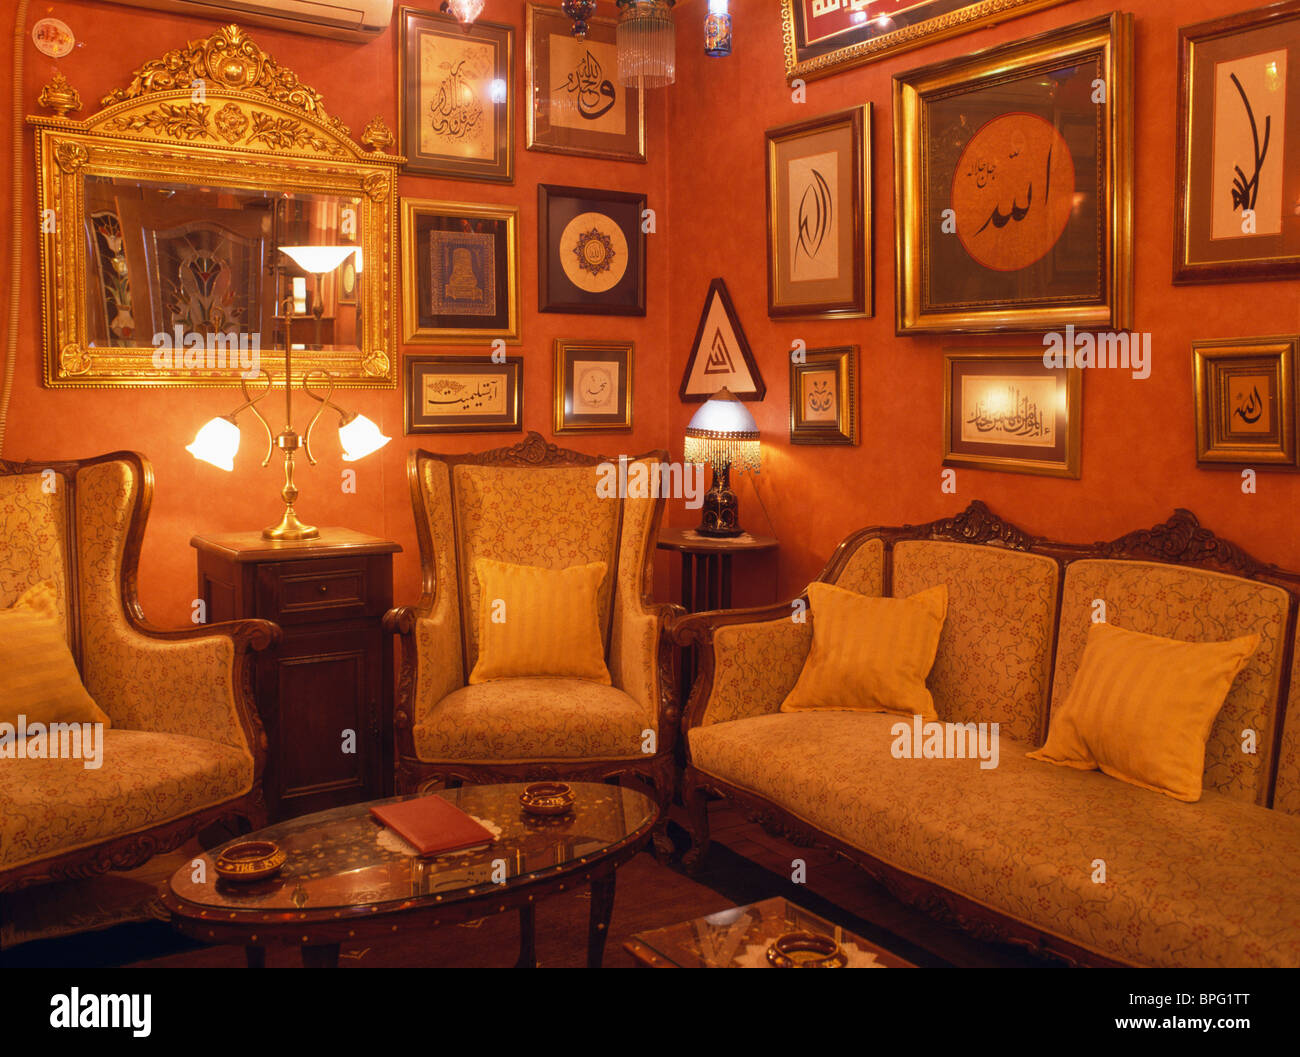 Pictures Covering Walls Of Red Turkish Living Room With Traditional Sofa  And Armchairs And Lighted Lamps